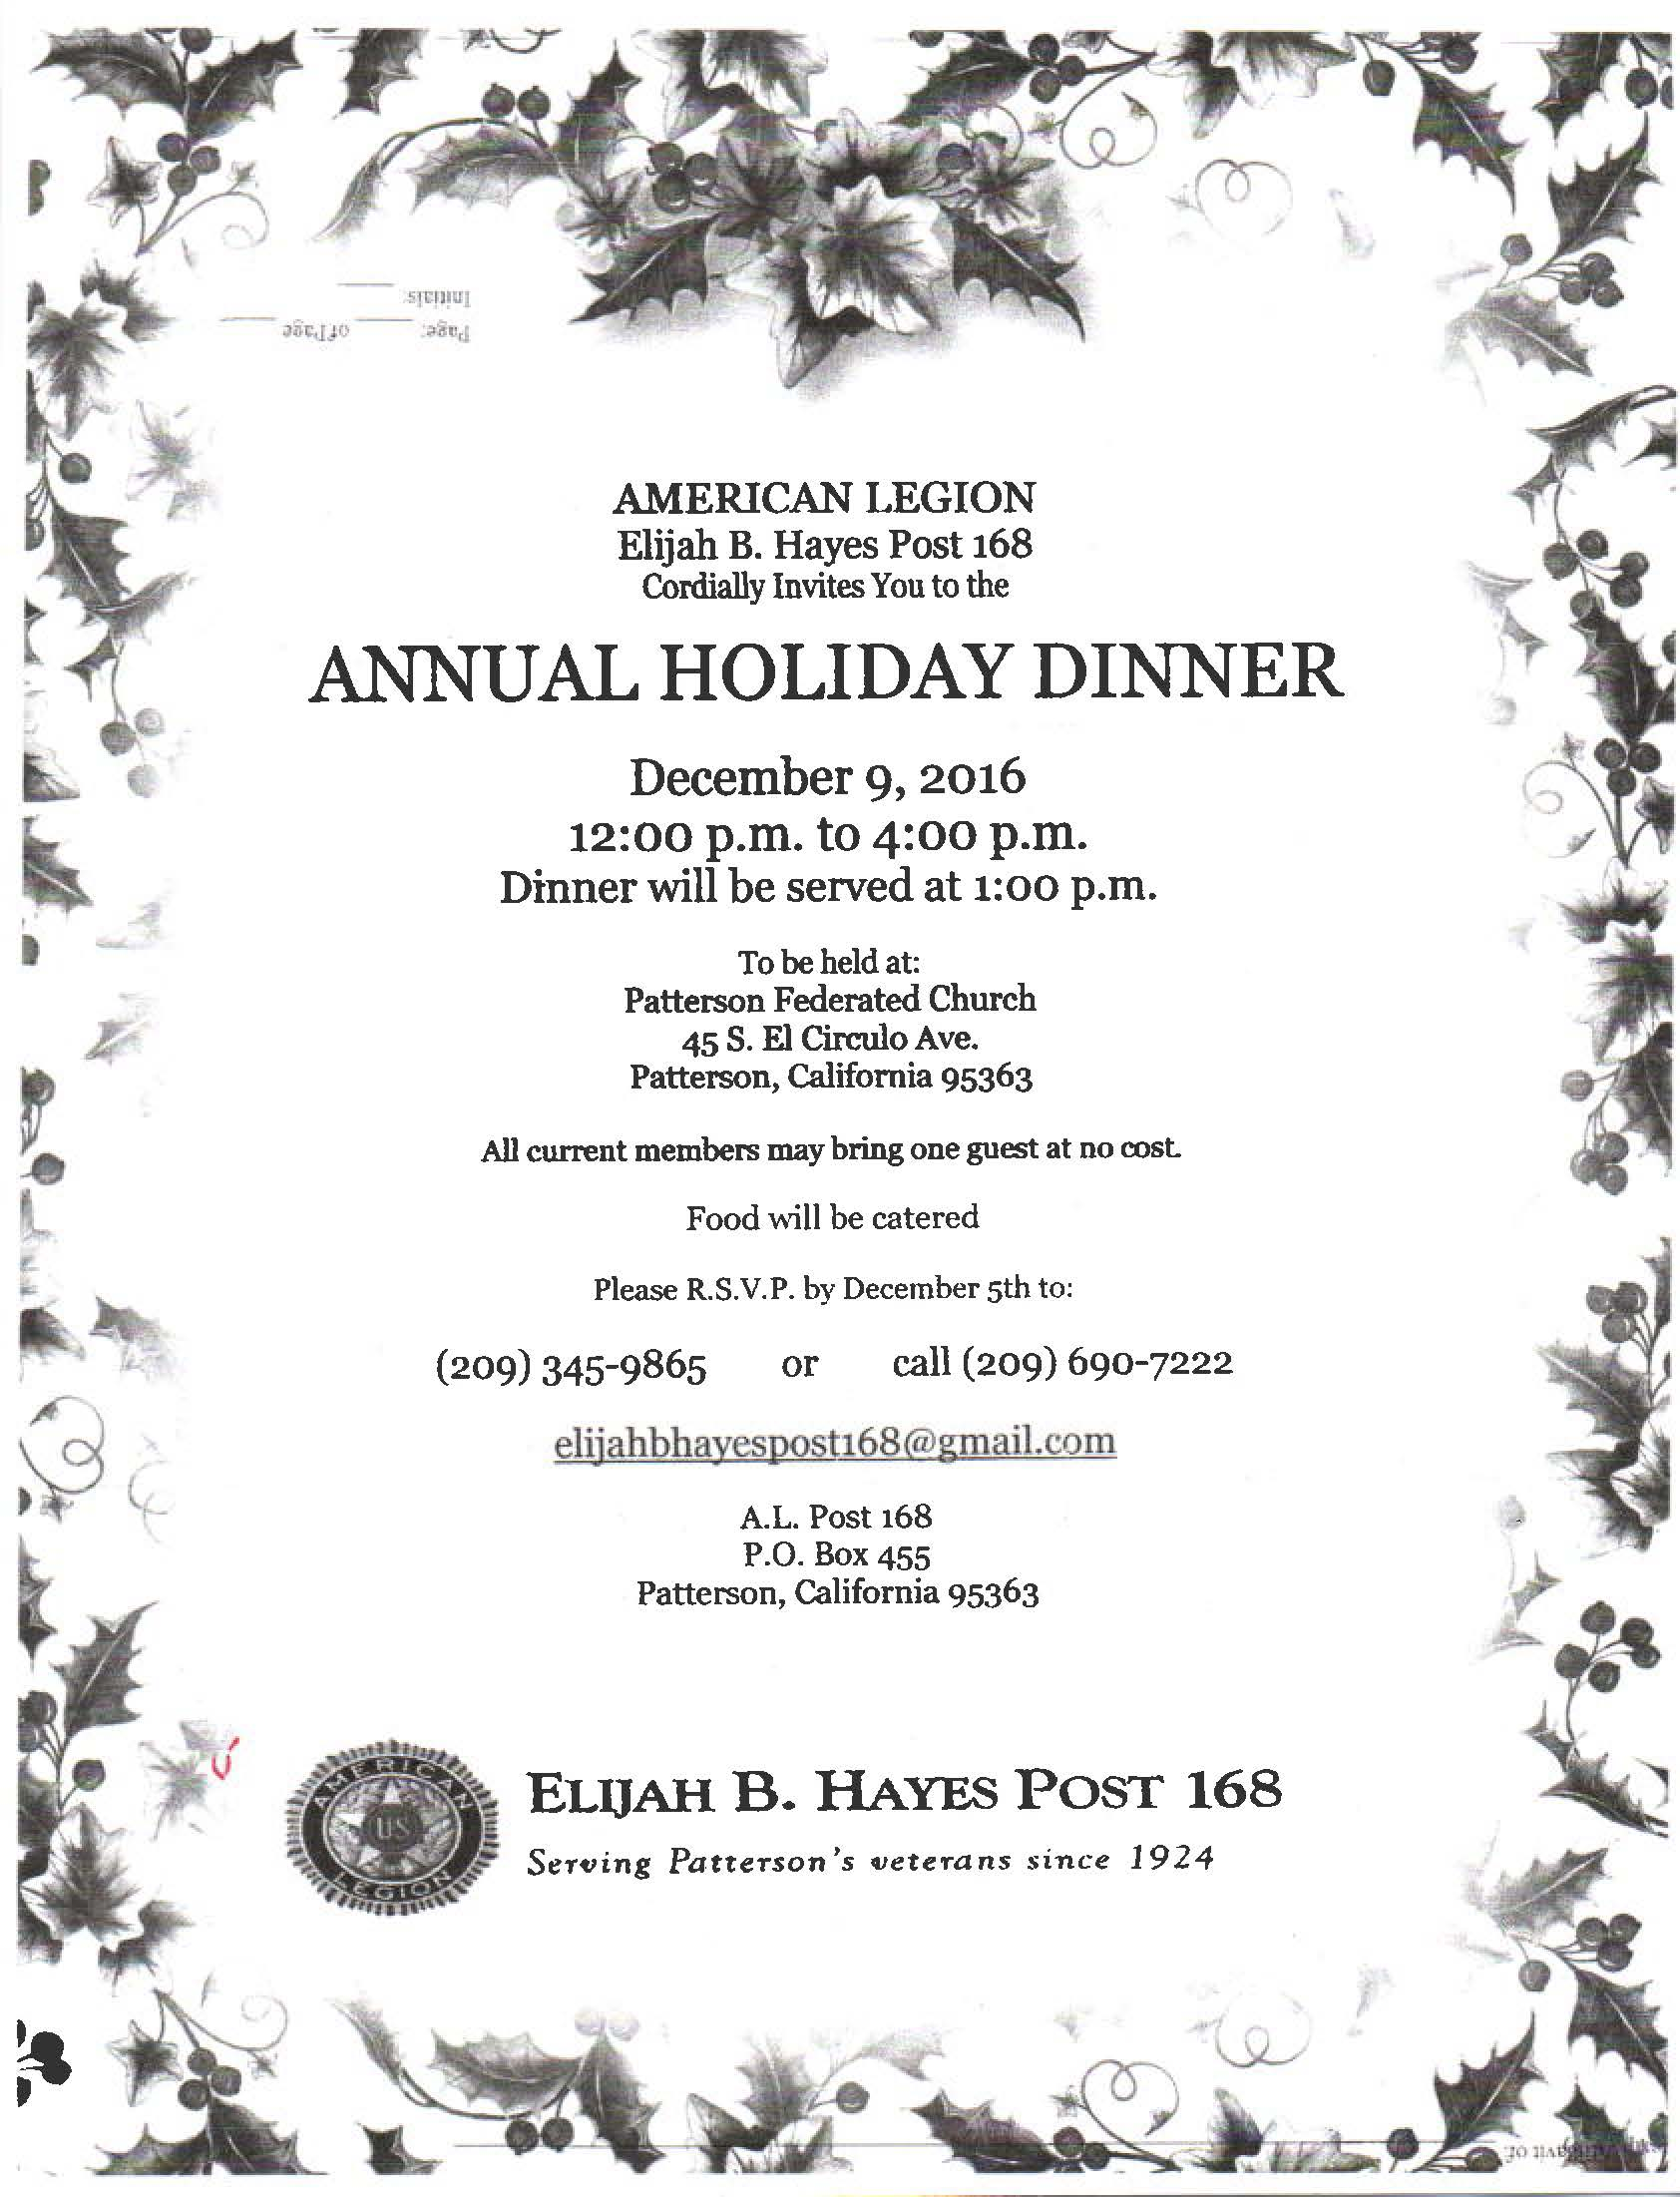 American Legion Annual Holiday Dinner